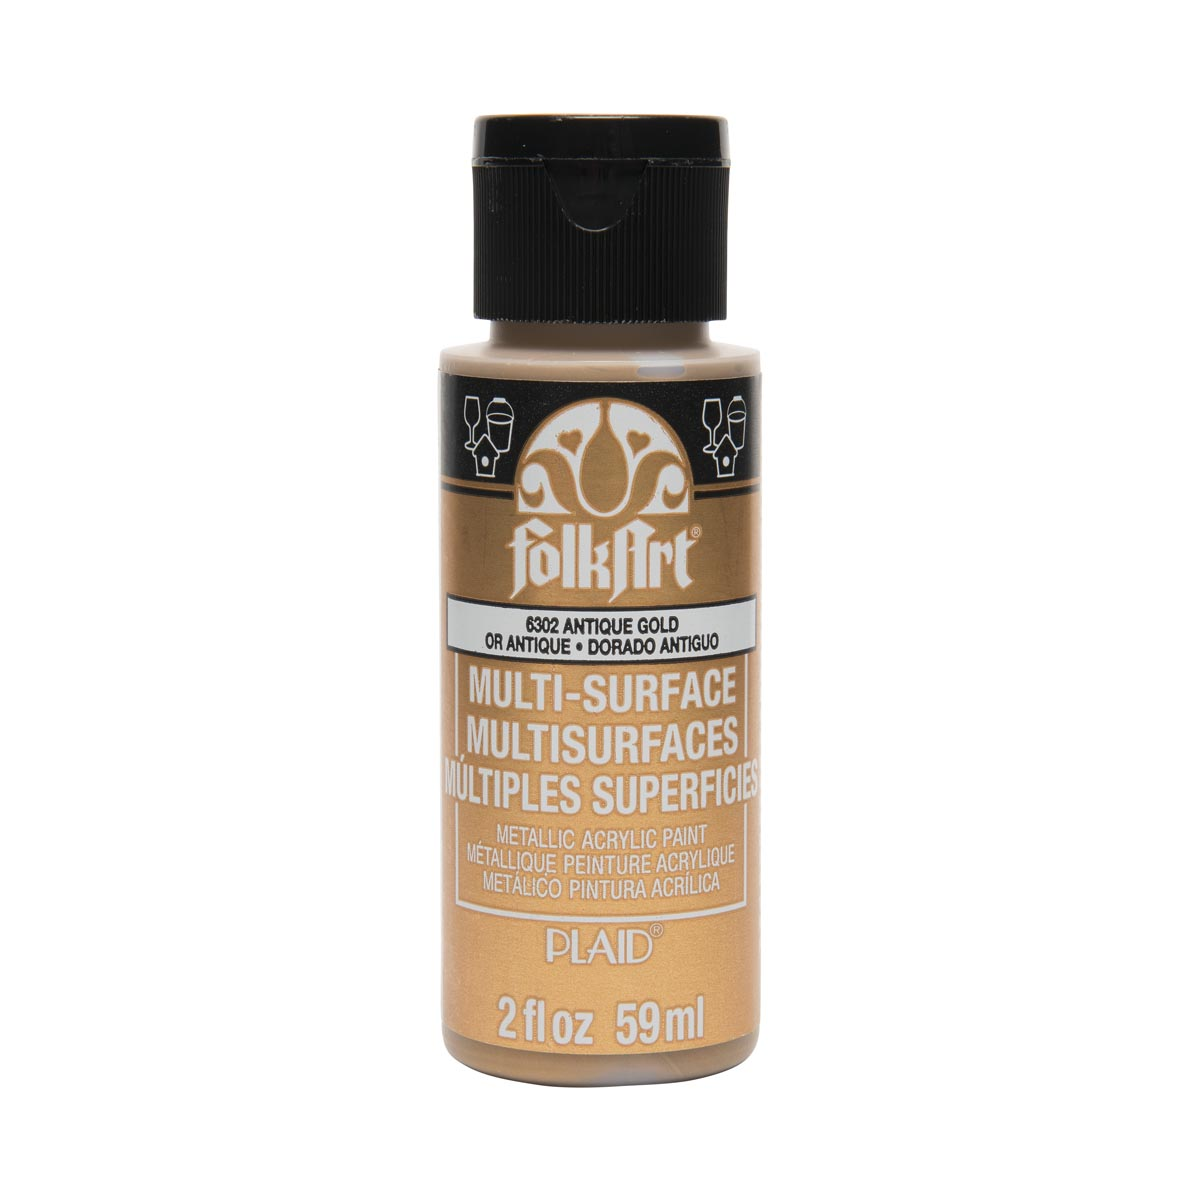 FolkArt ® Multi-Surface Metallic Acrylic Paints - Anitque Gold, 2 oz.